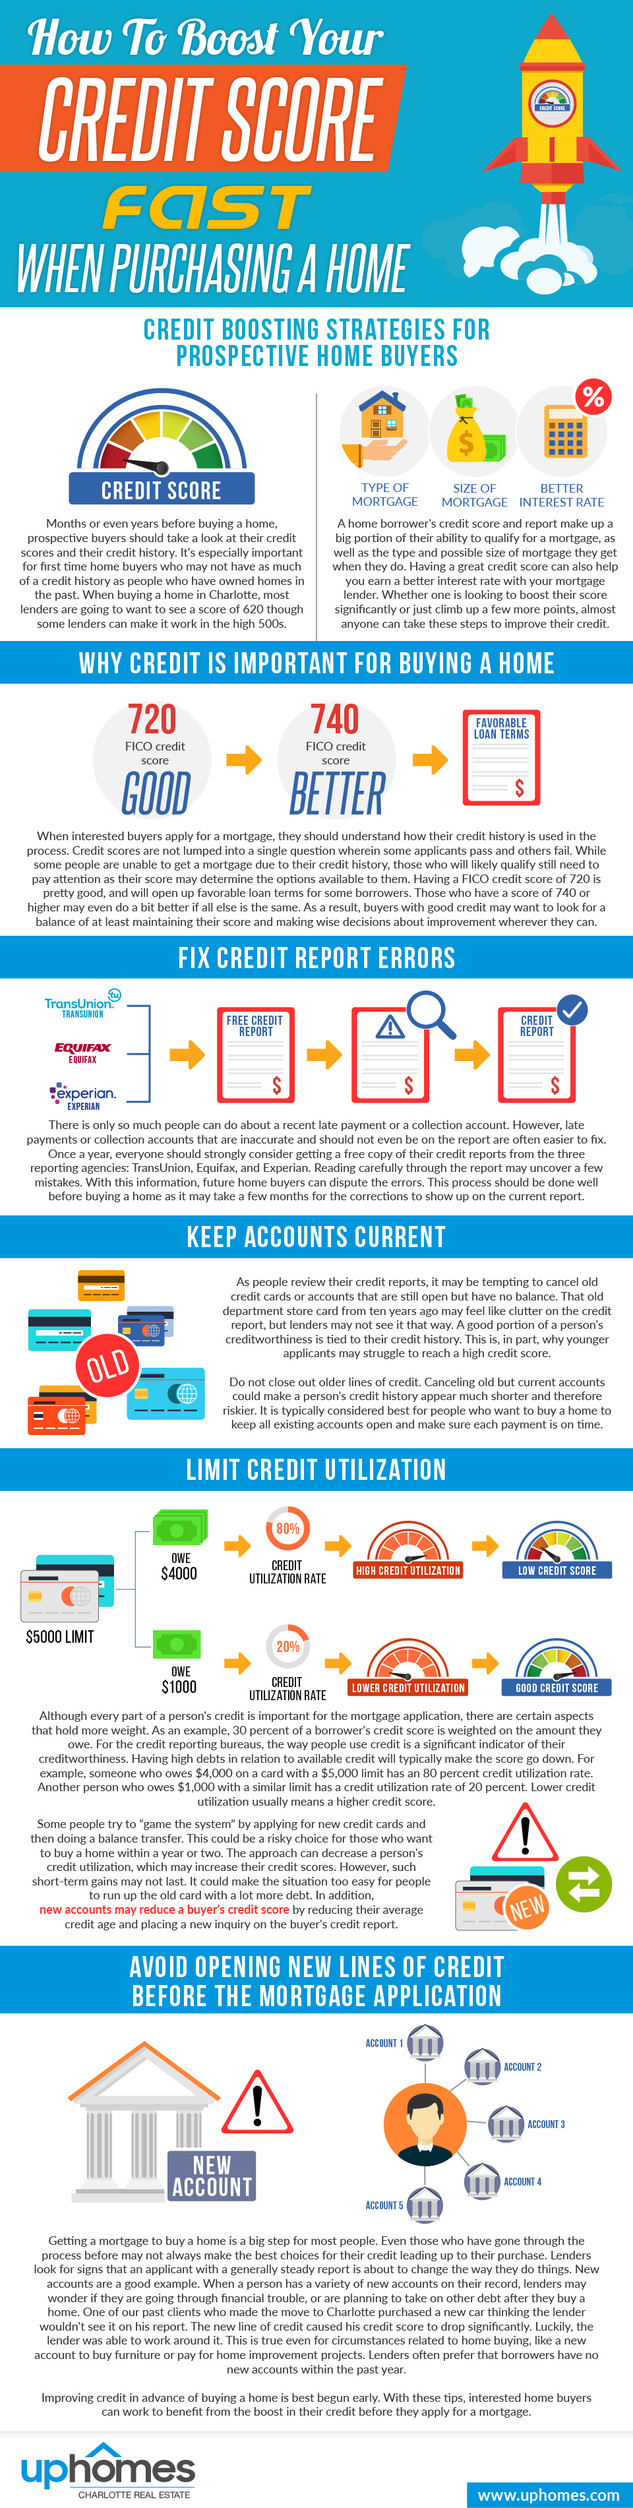 How to Boost Your Credit Score Fast When Purchasing a Home